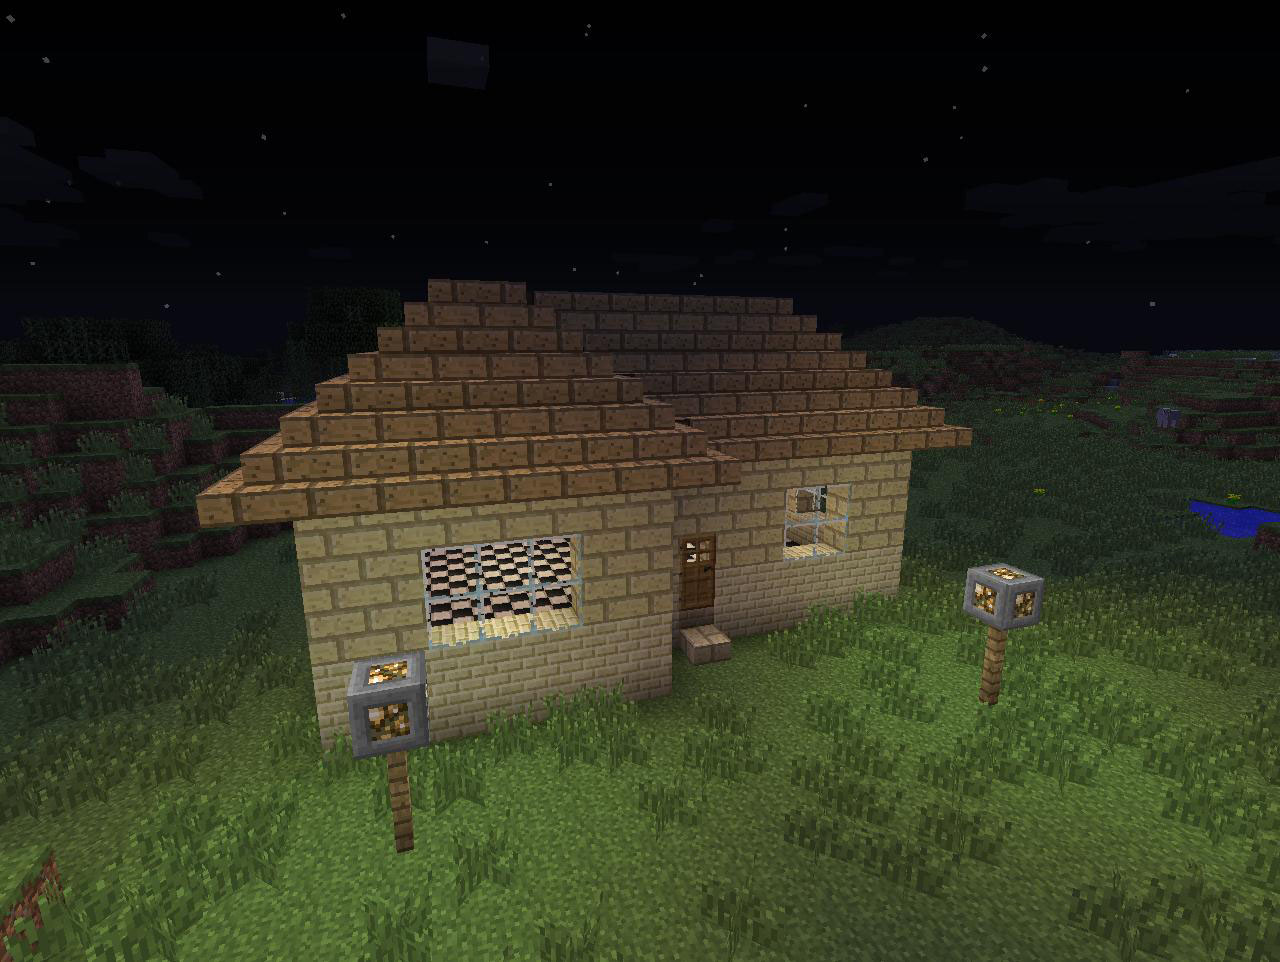 http://minecraft-forum.net/wp-content/uploads/2013/07/28c4a__Extrapolated-Decor-Mod-1.jpg